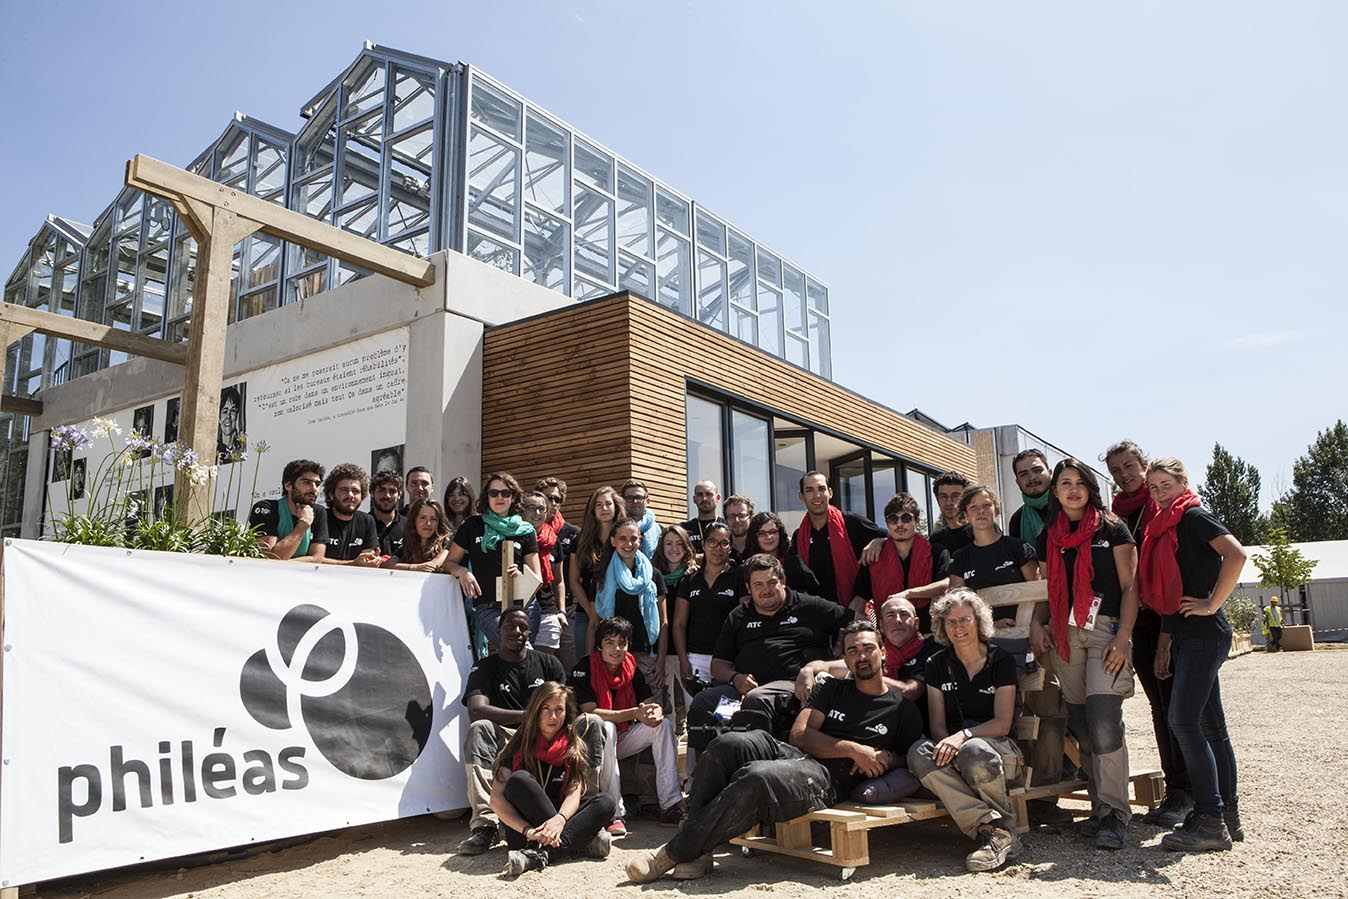 Solar Decathlon Europe by Valeria Anzolin and Jason Flakes project